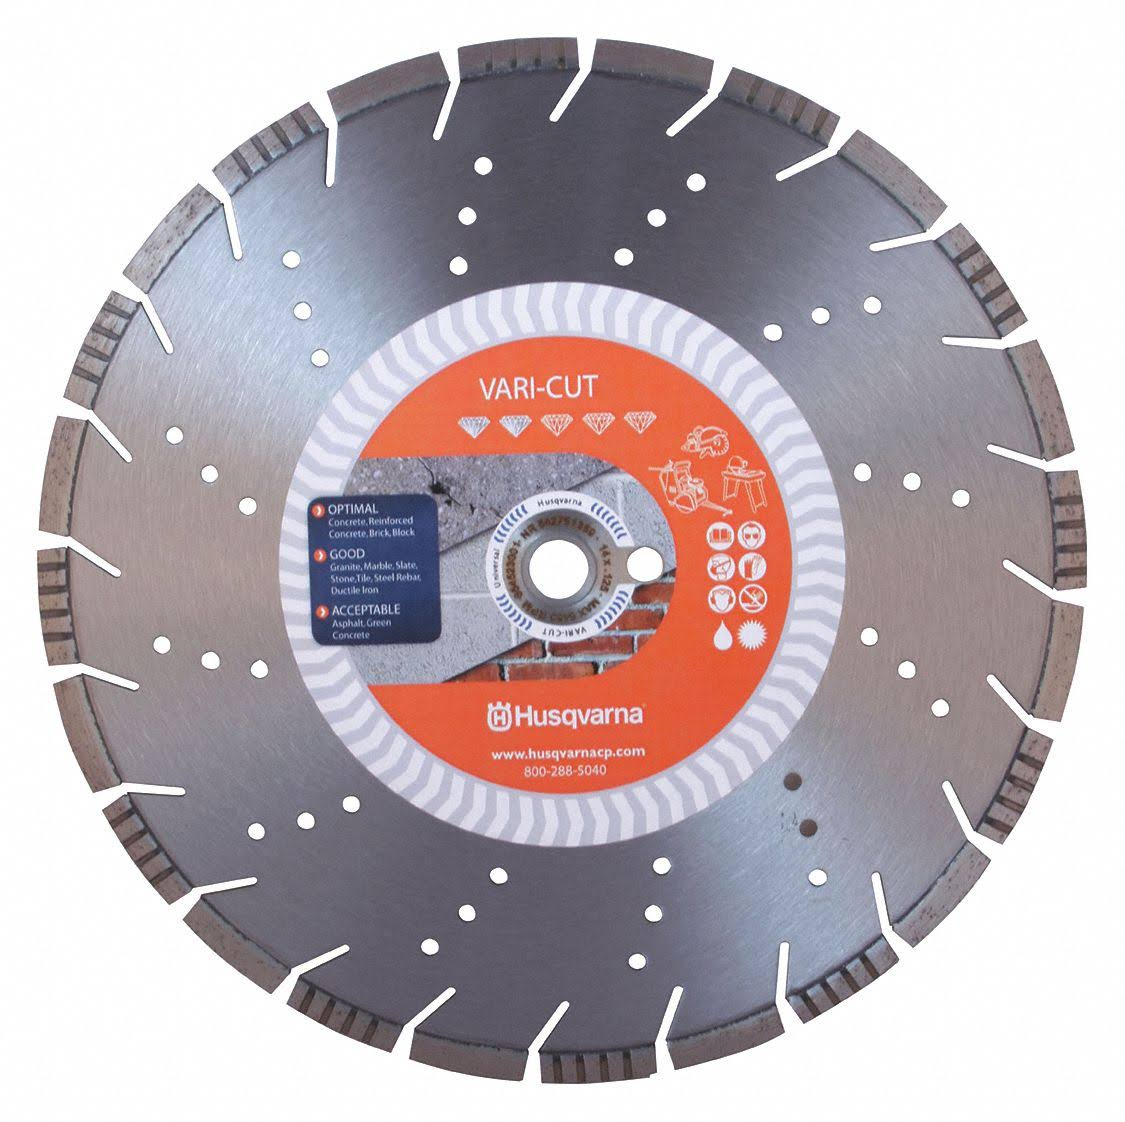 Husqvarna 542751359 Vari Cut Diamond Saw Blade - 14""